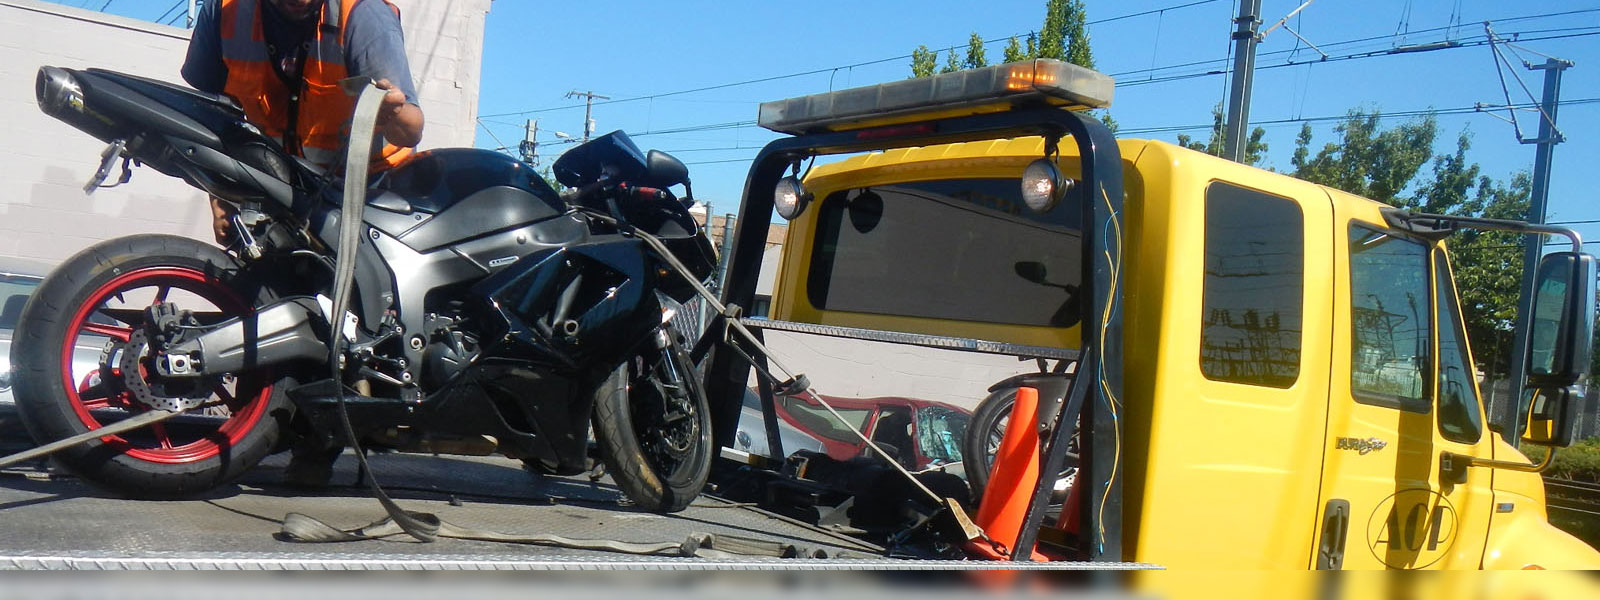 Portland Light Duty Towing Services Lowest Rates Call Us Today At 503 309 6016